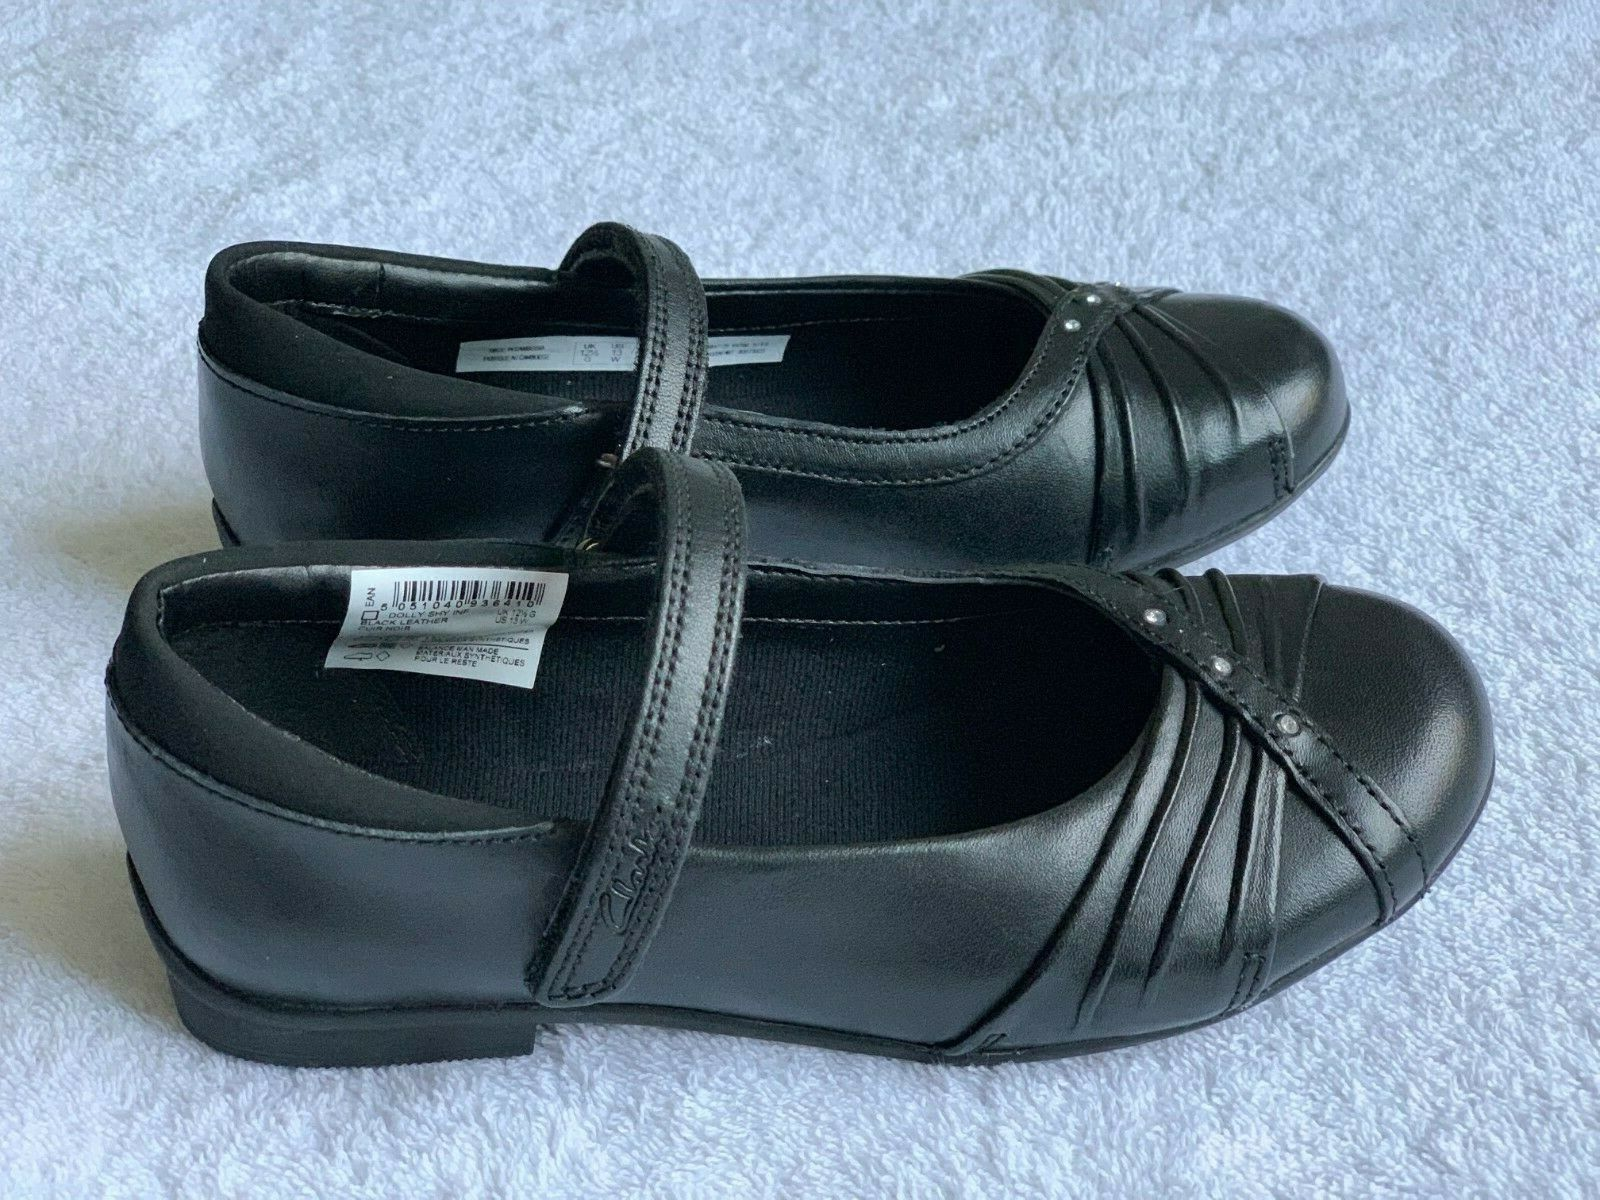 BNIB Clarks Bootleg Selsey Play Girls Black Patent Leather School Shoes